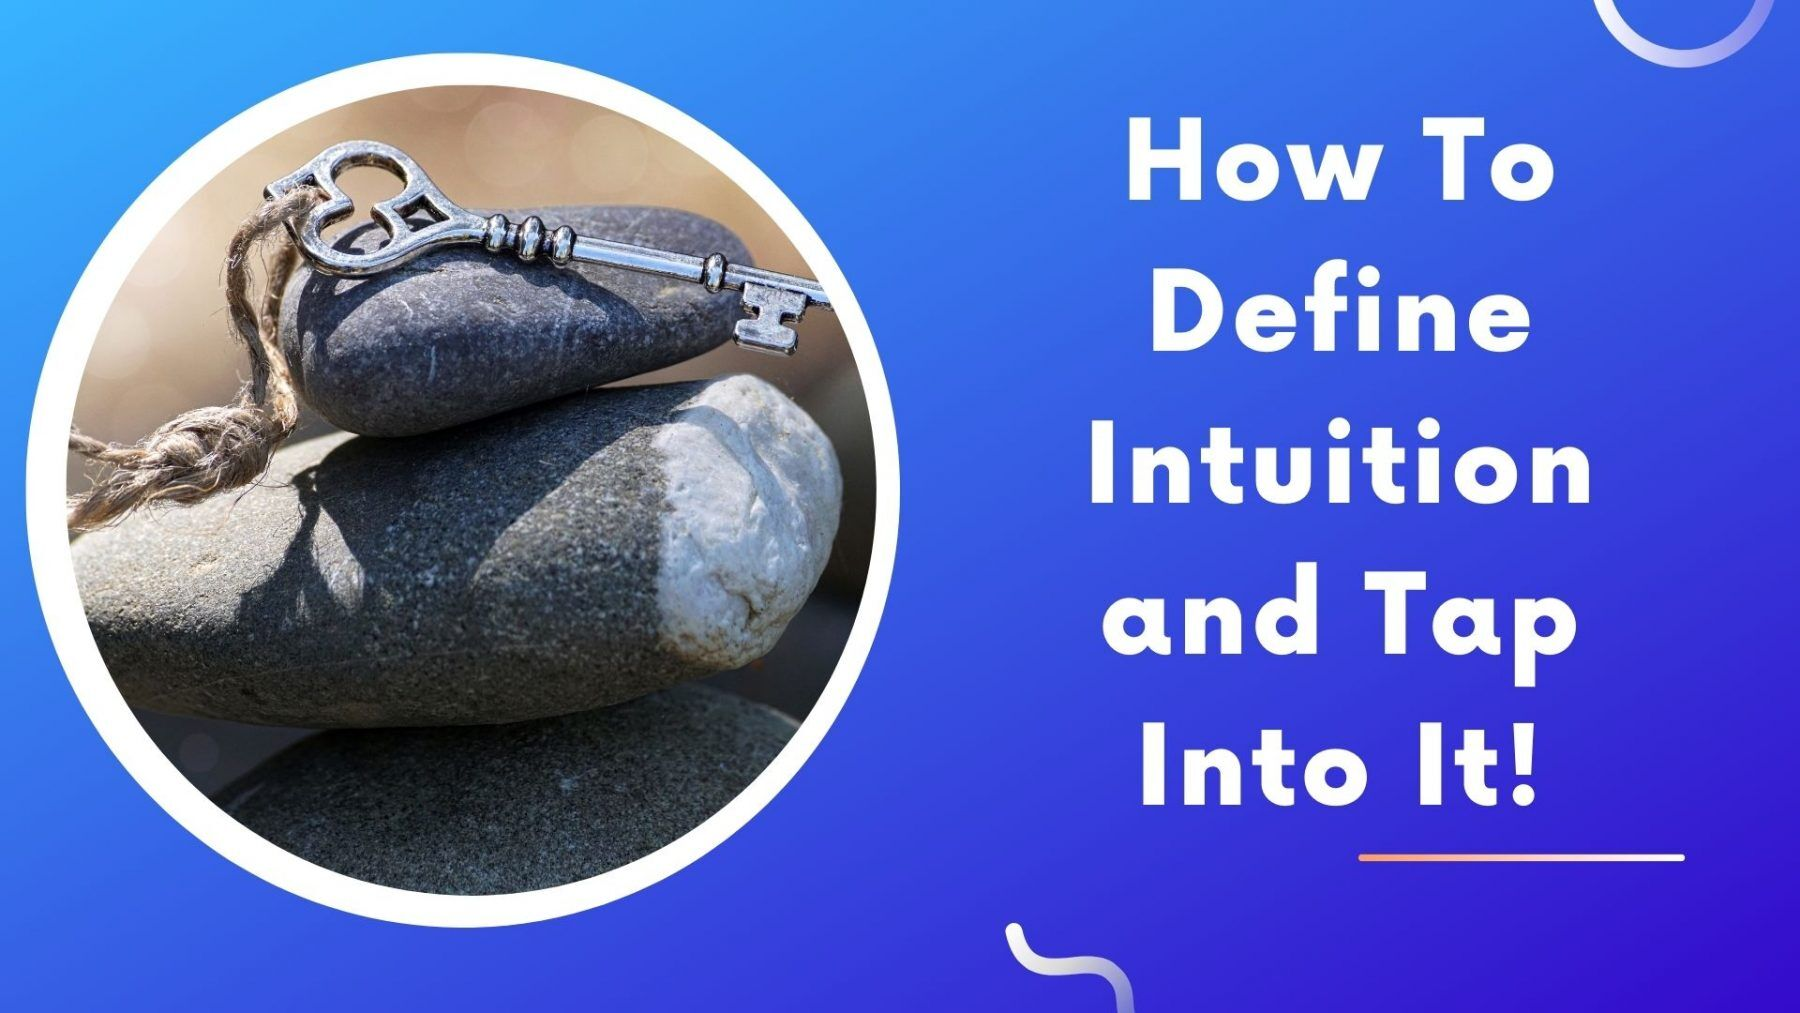 How To Define Intuition and Tap Into It!